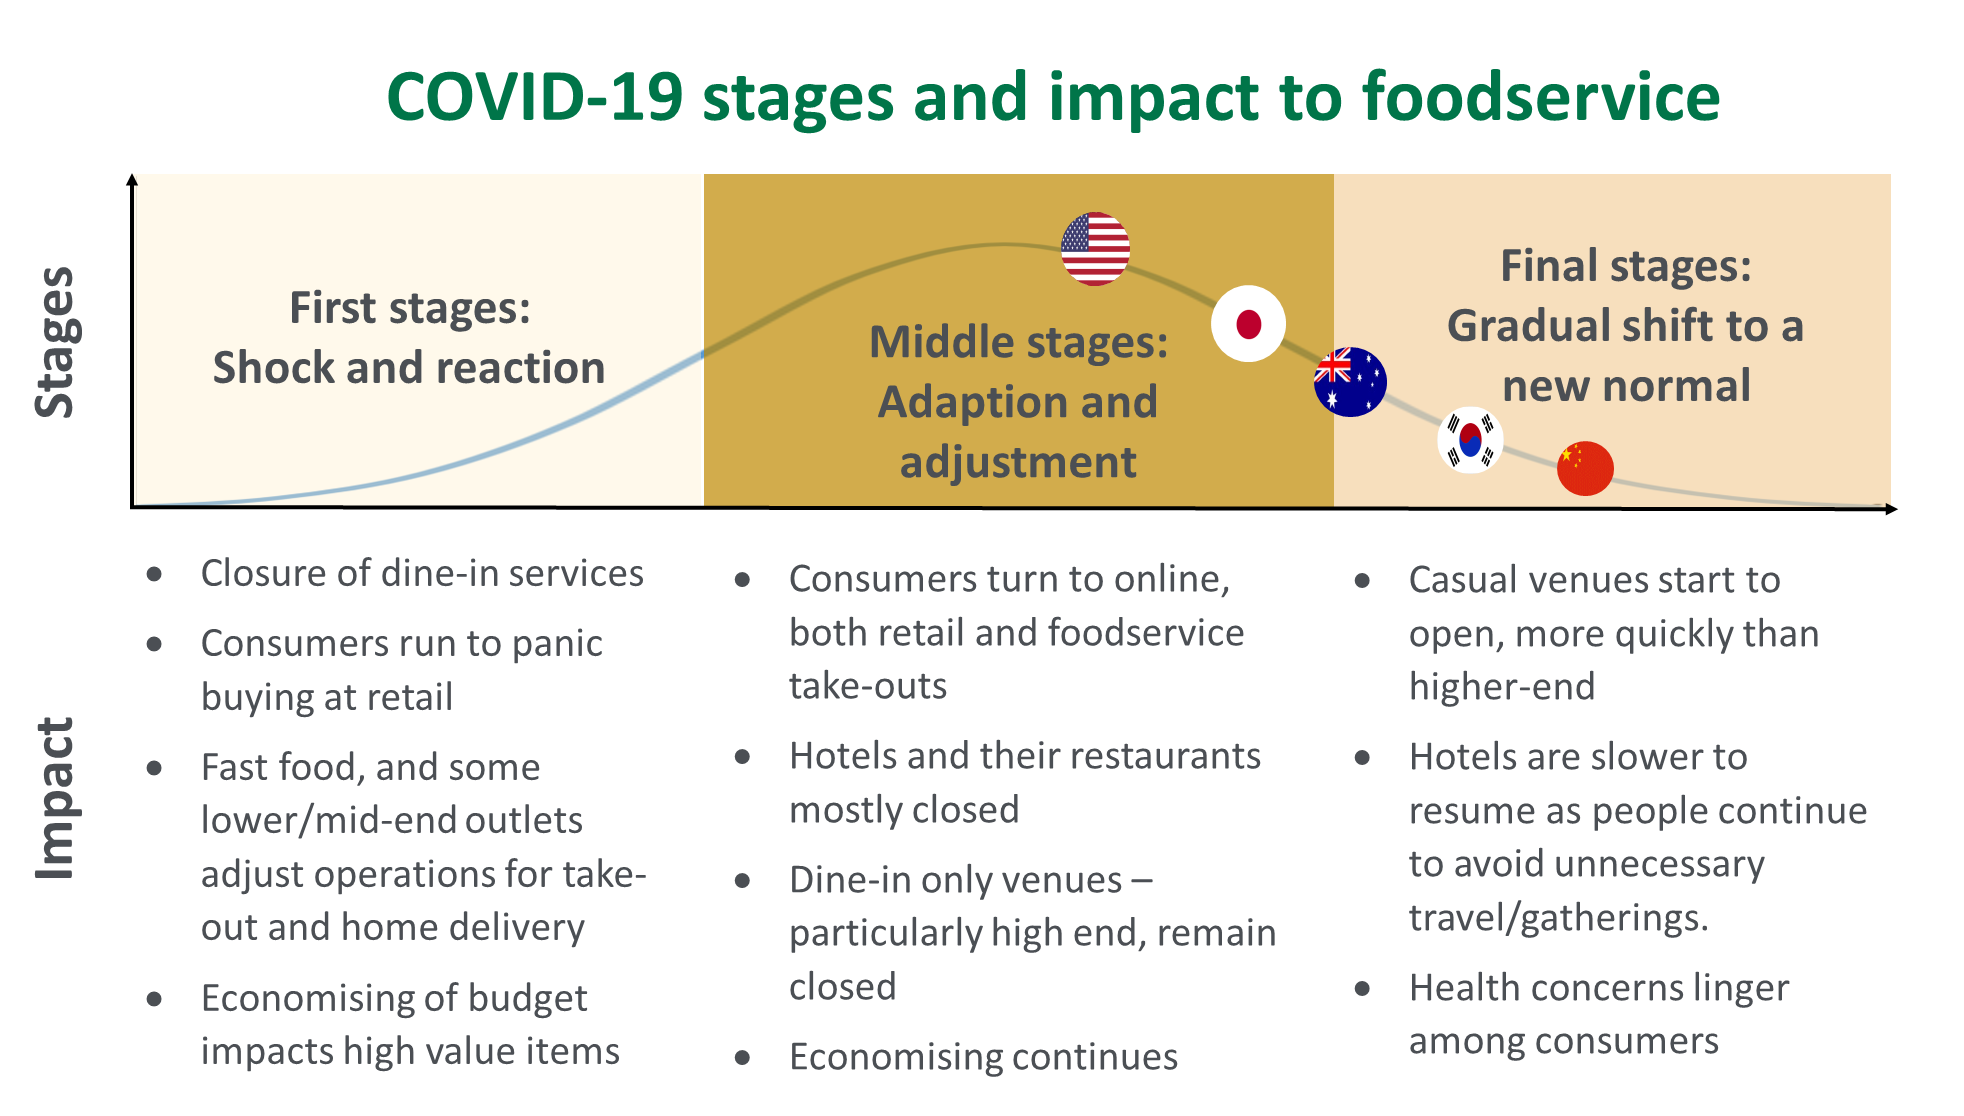 Covid-19-foodservice-280520.png